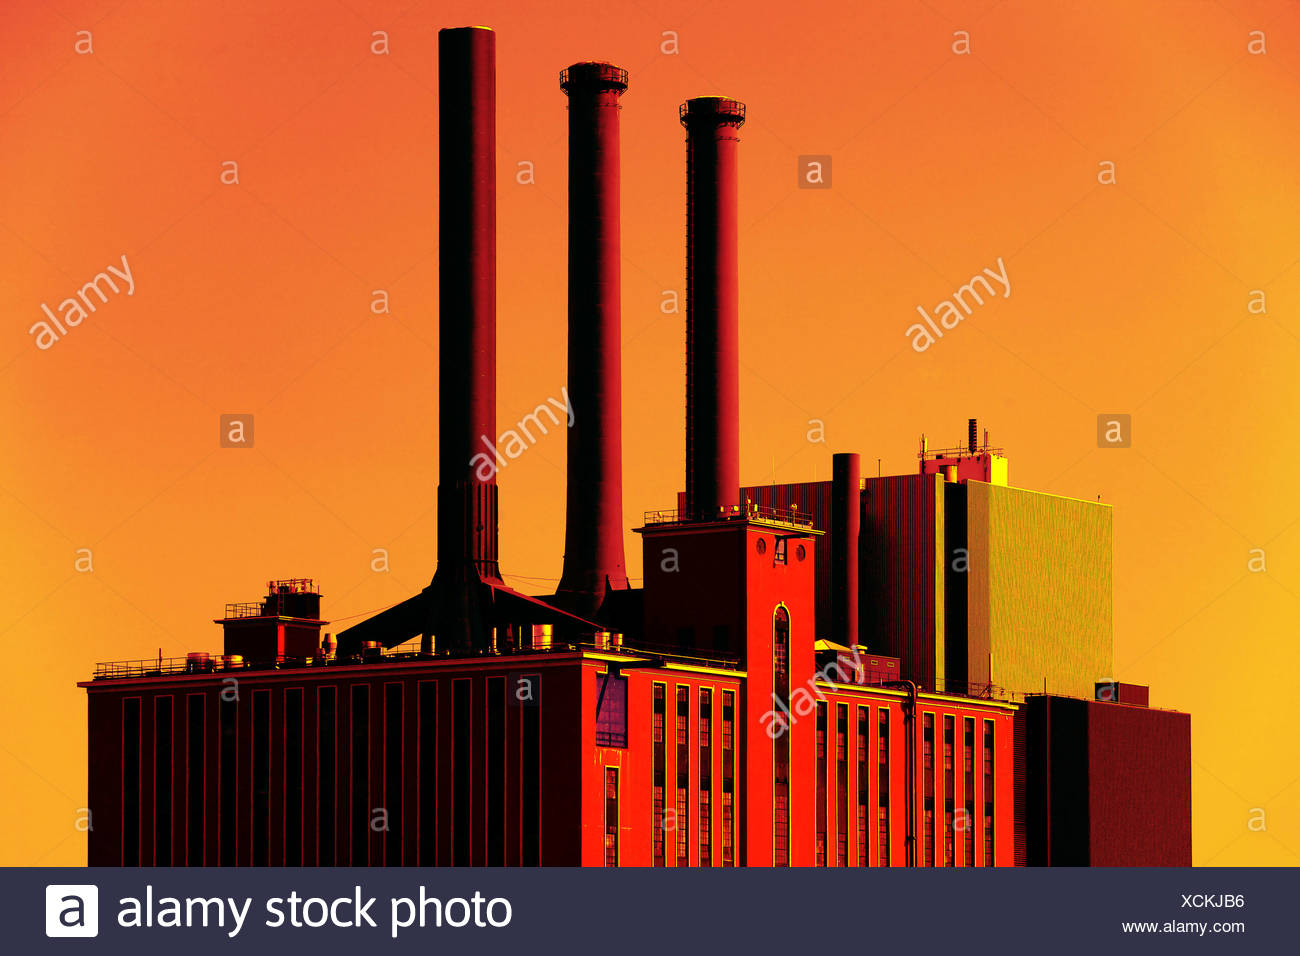 Combined power and heating station, Denmark - Stock Image